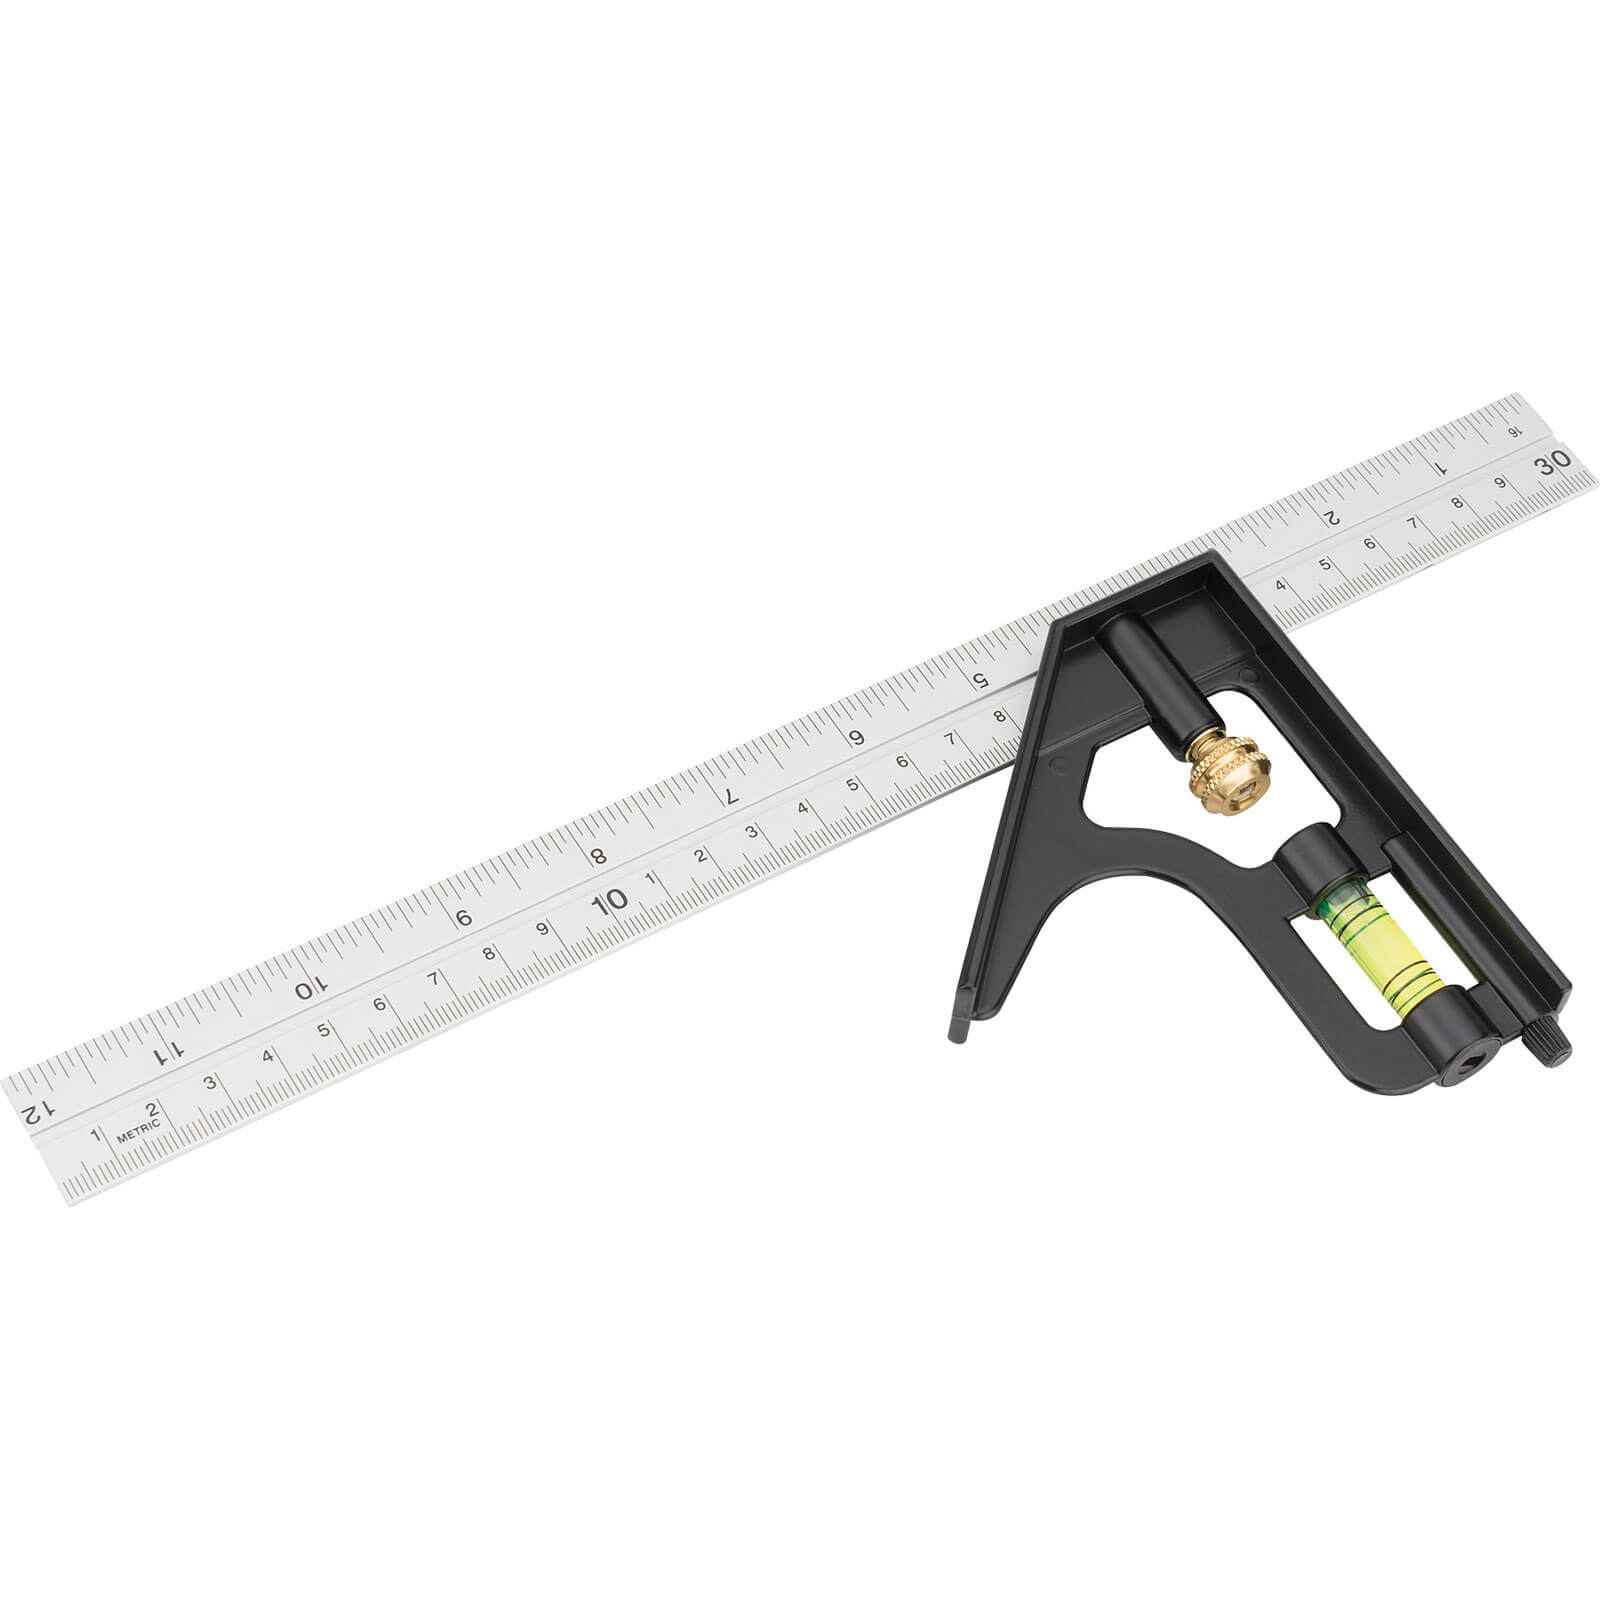 Draper Combination Square 300mm